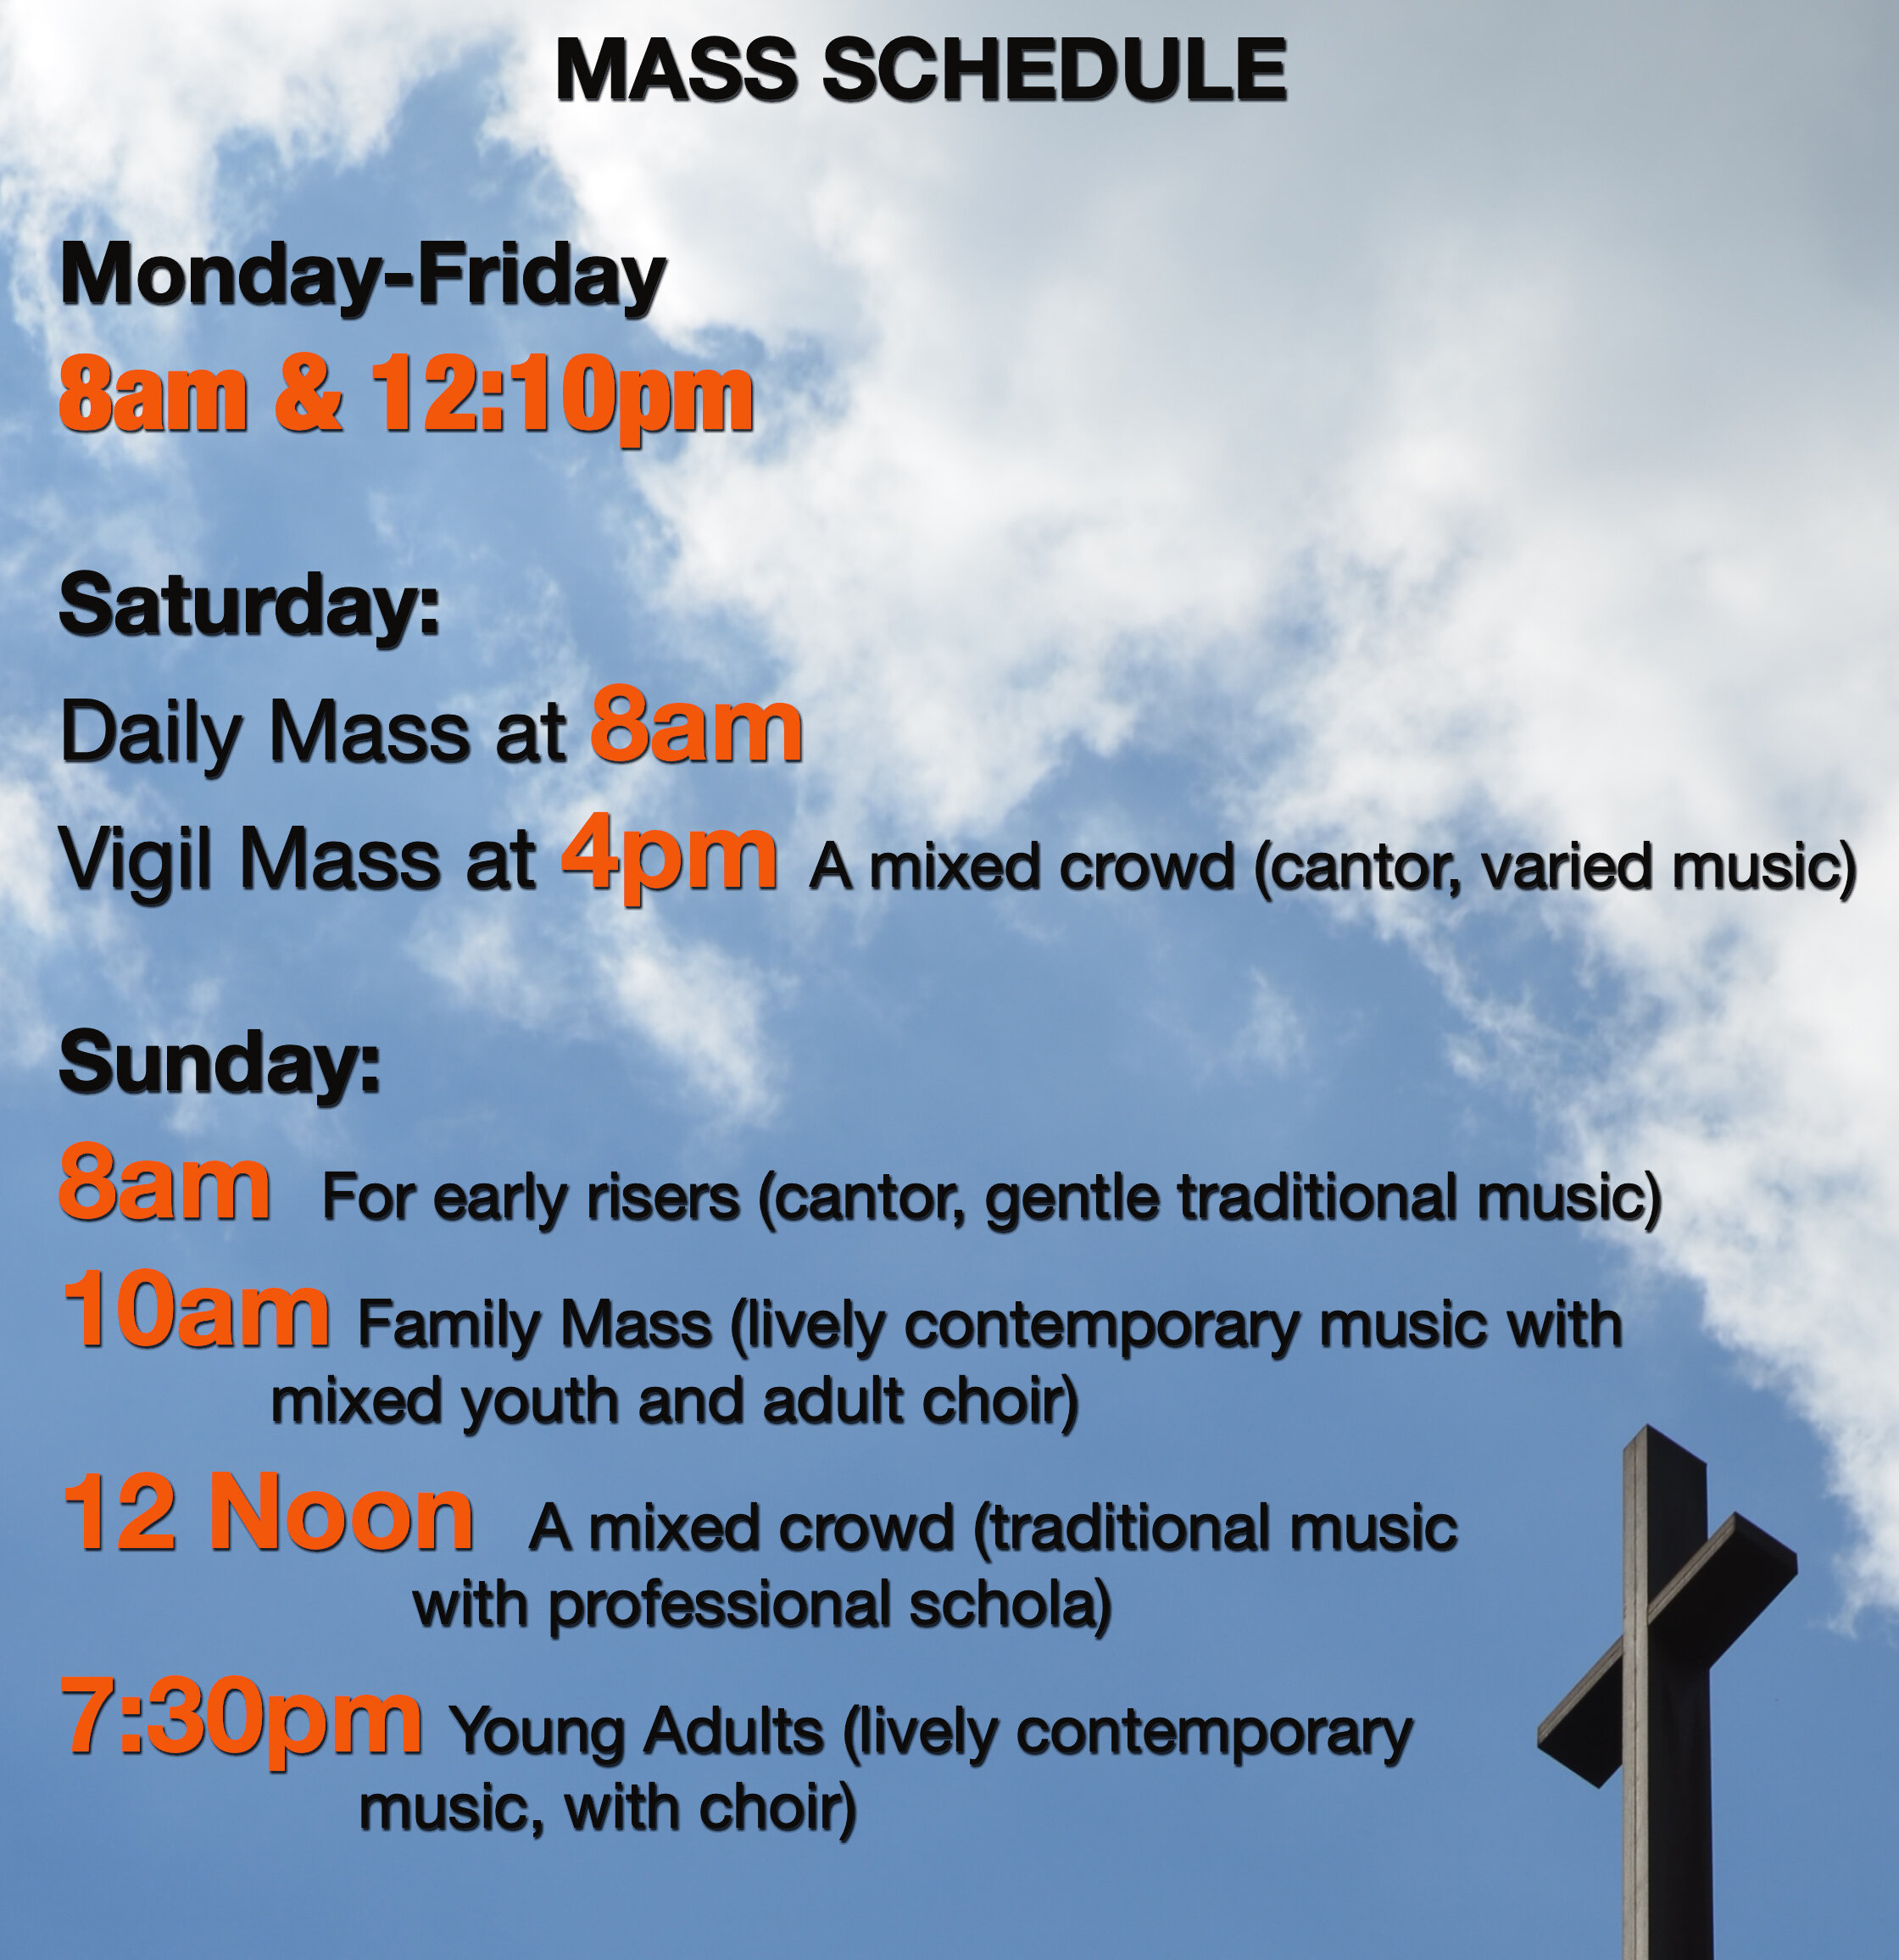 MASS SCHEDULE FOR WEB PAGE Smaller type.jpg